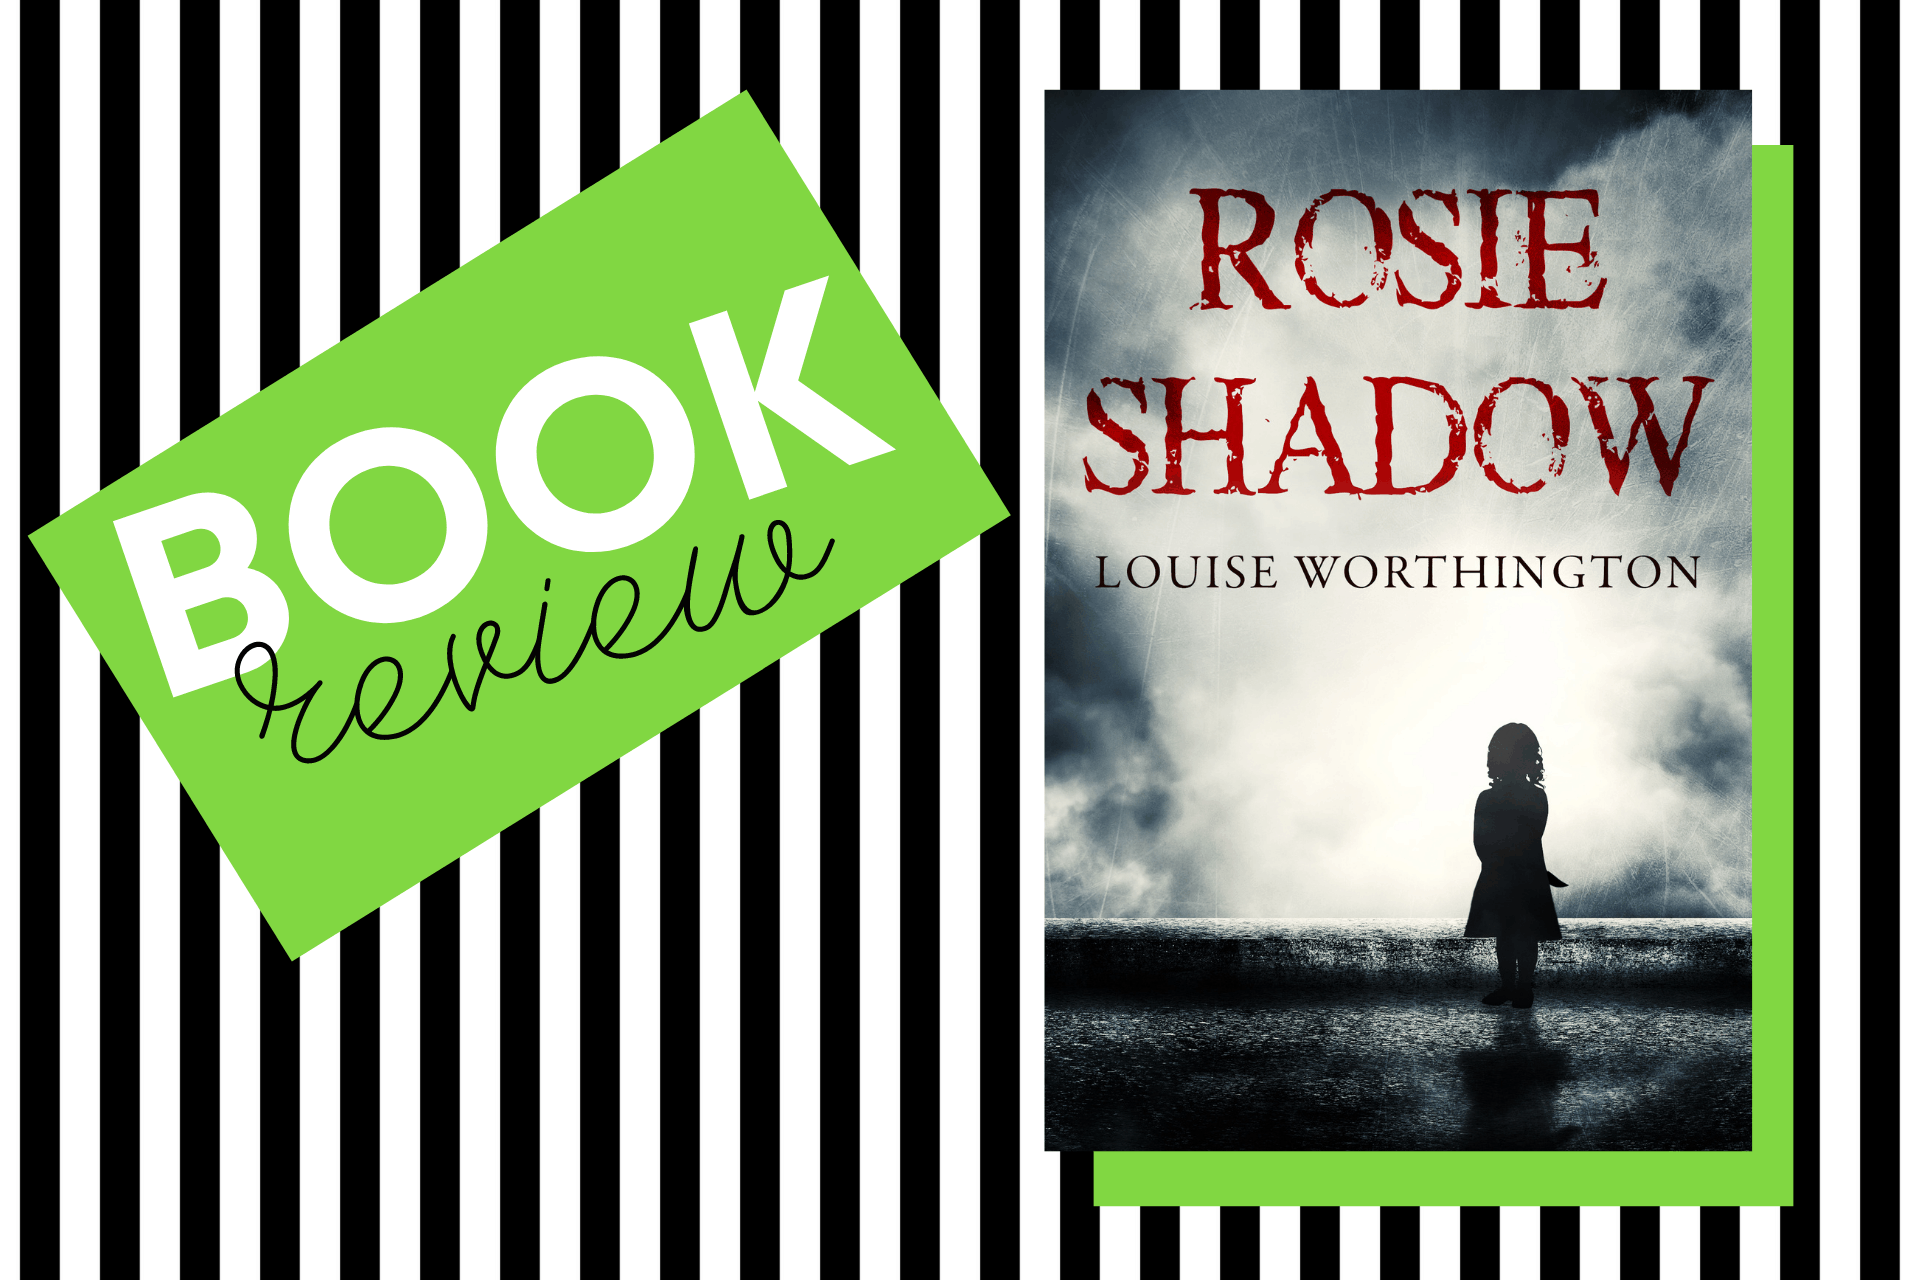 The cover of Rosie Shadow by Louise Worthington